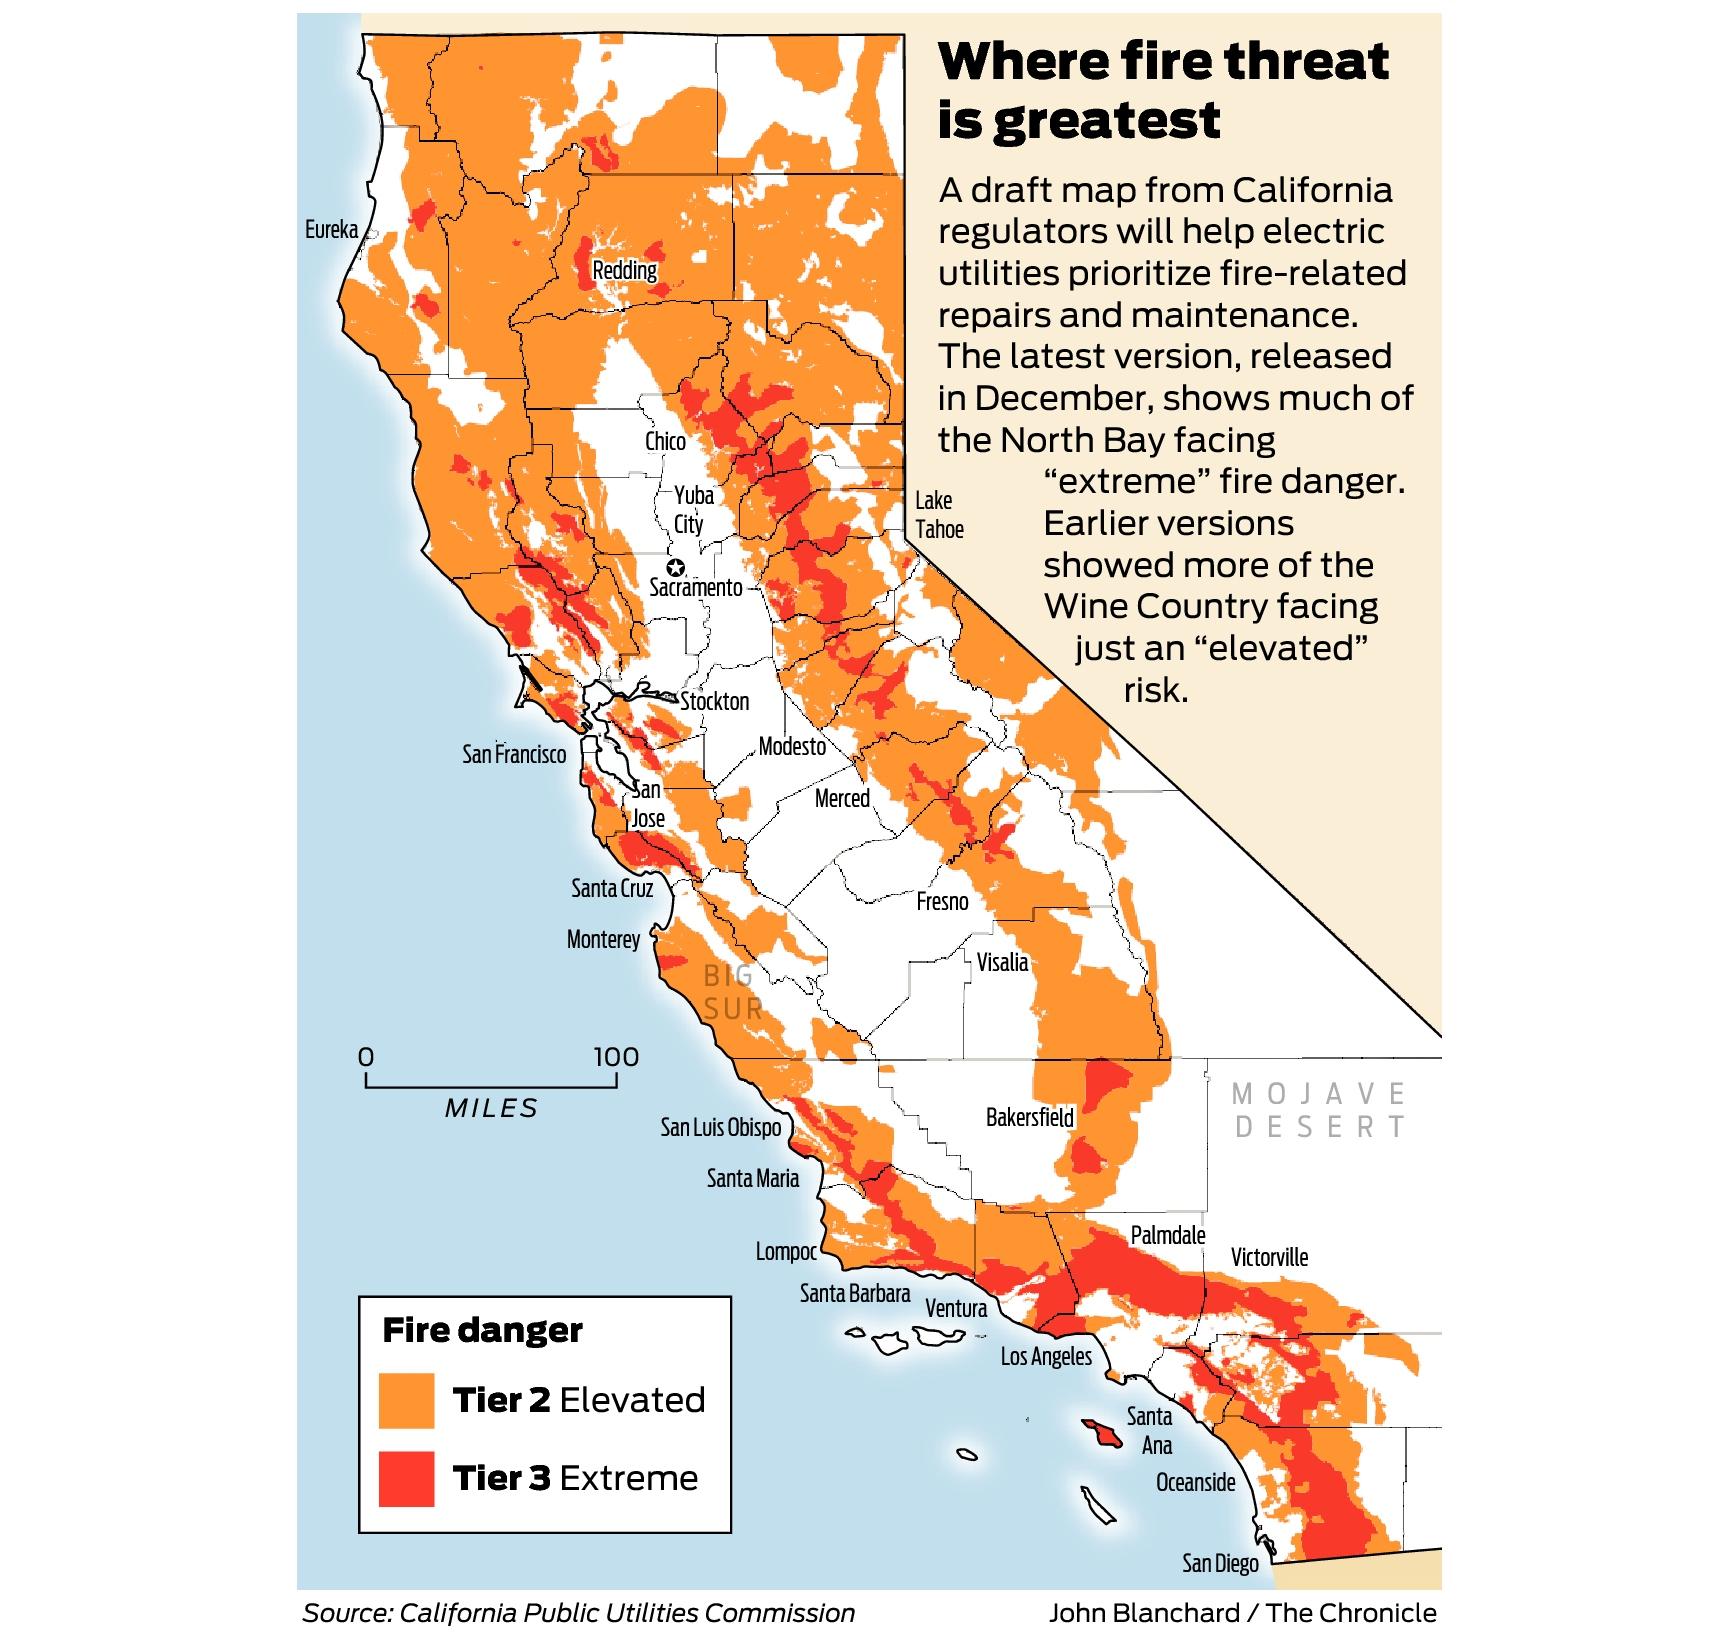 California Fire-Threat Map Not Quite Done But Close, Regulators Say - Fire Map California 2018